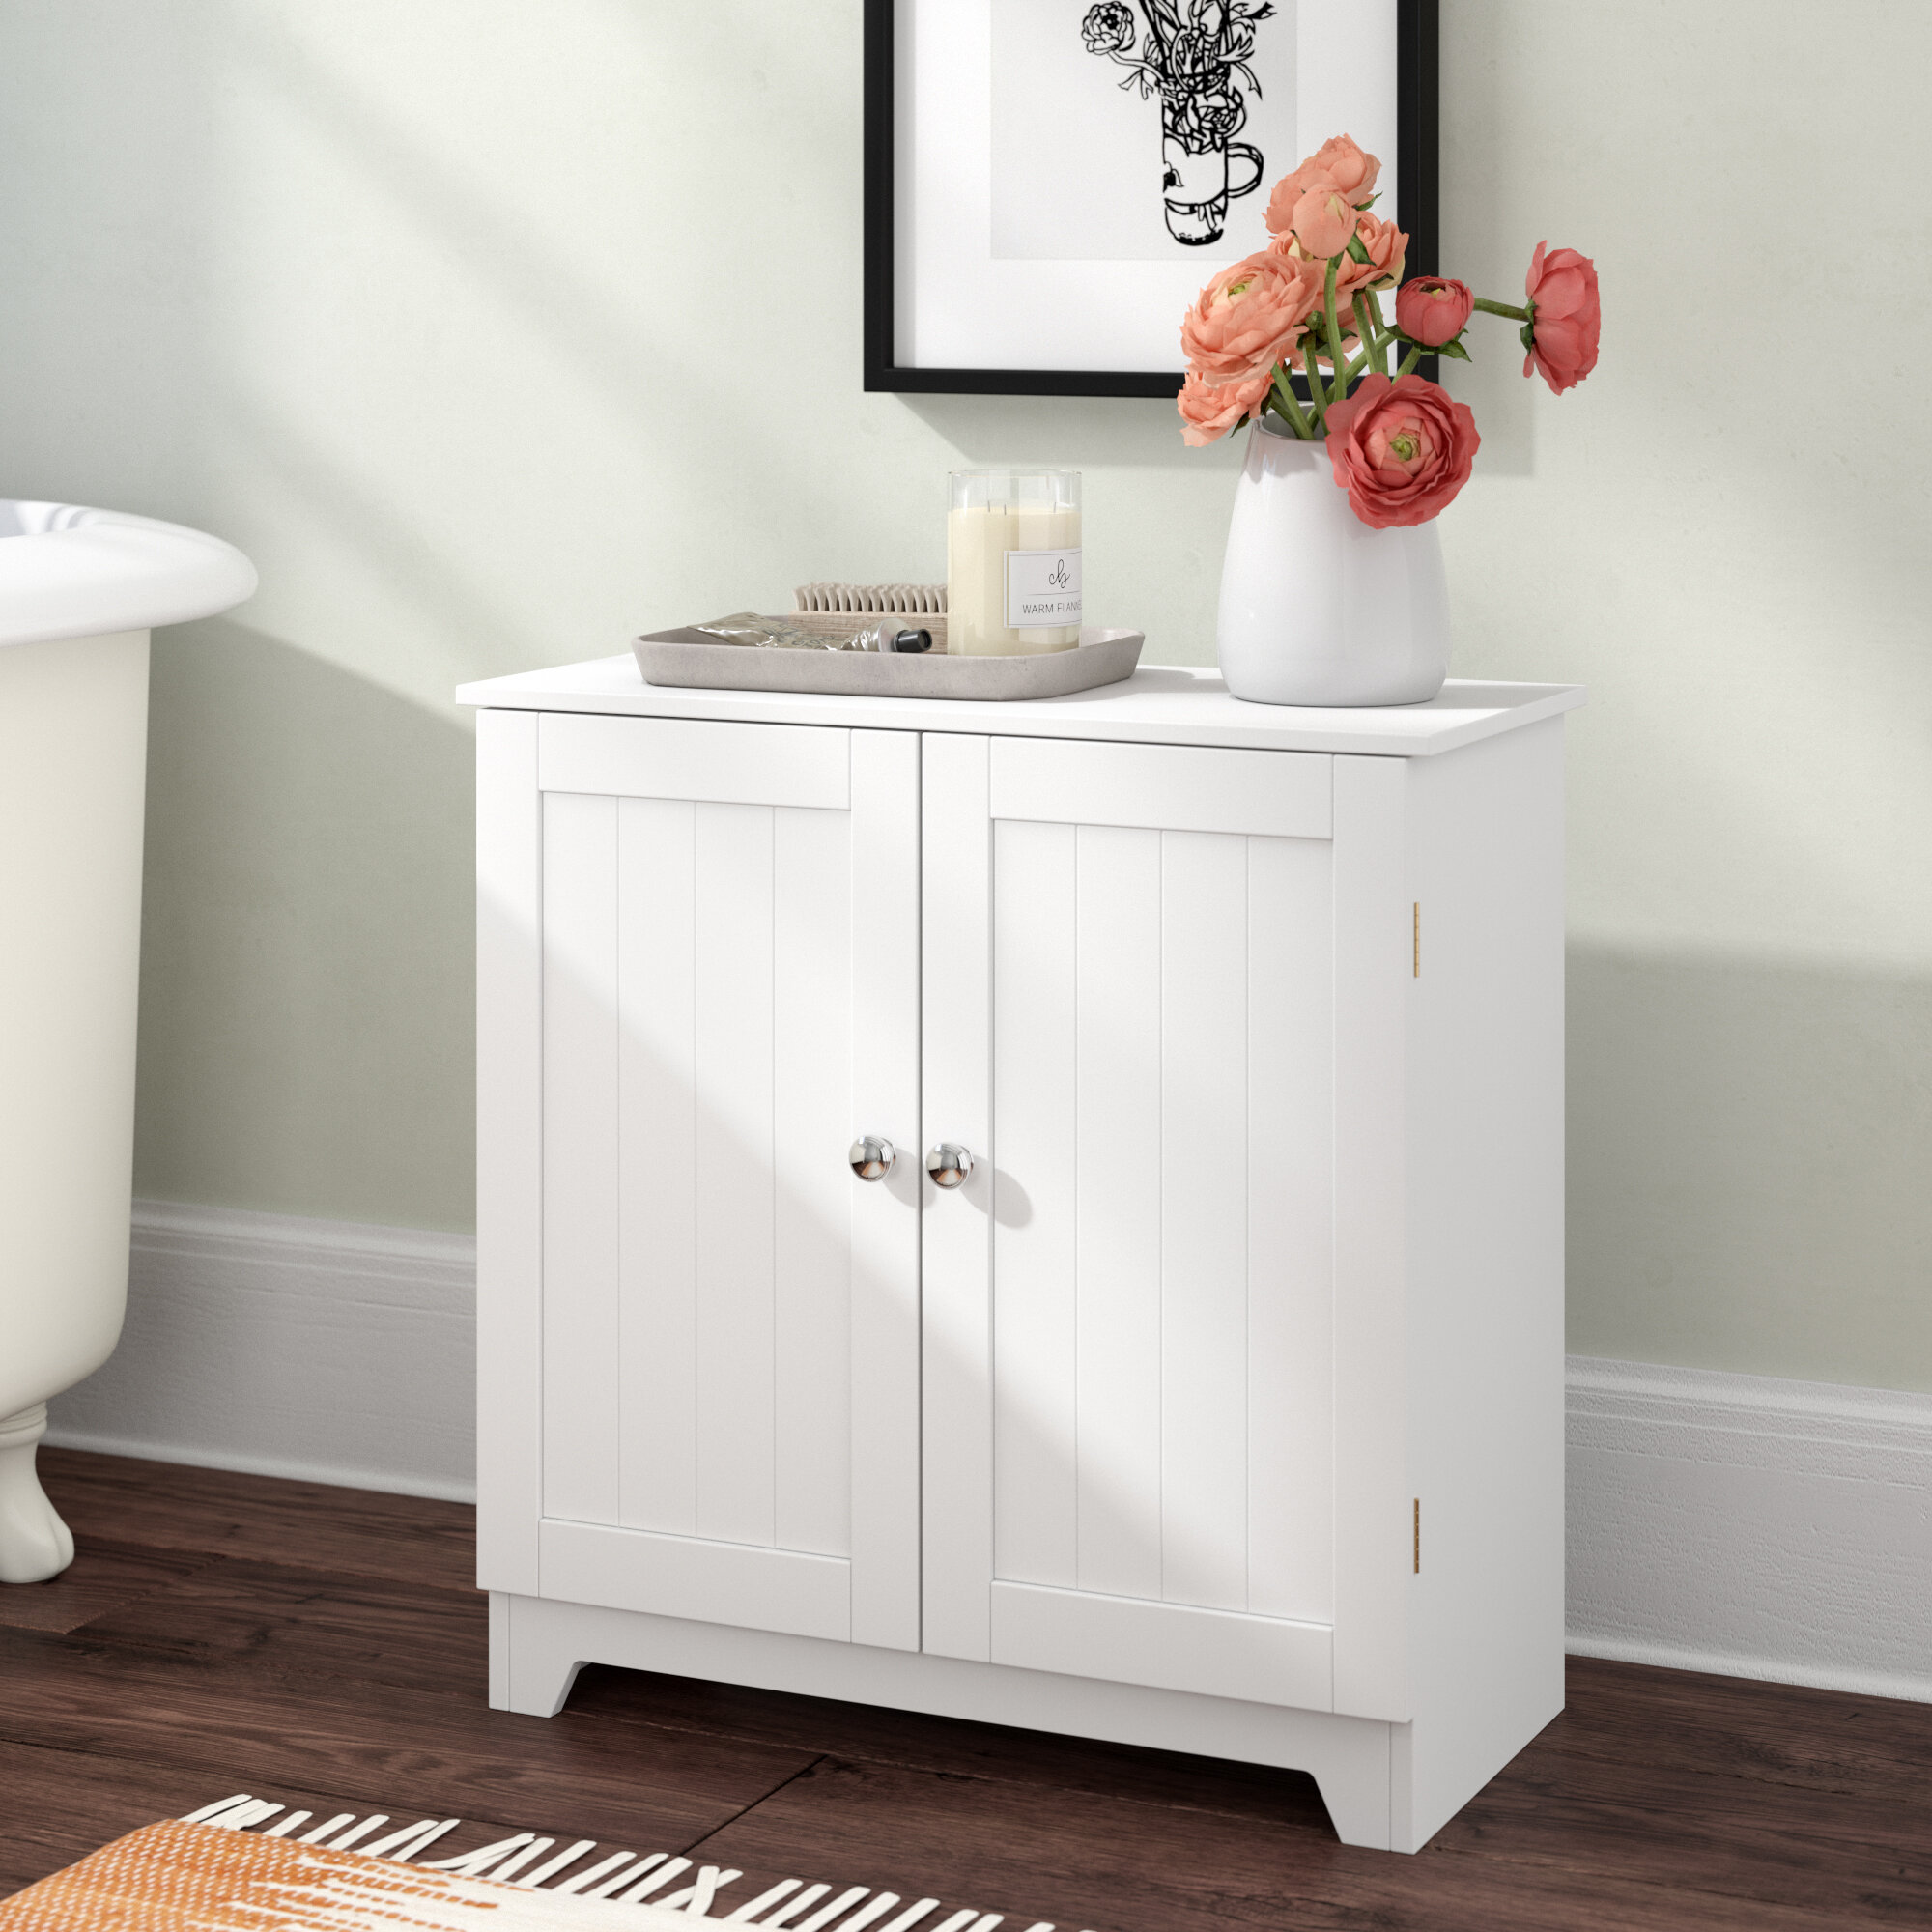 Rebrilliant Contemporary Country Double Door 236 W X 236 H